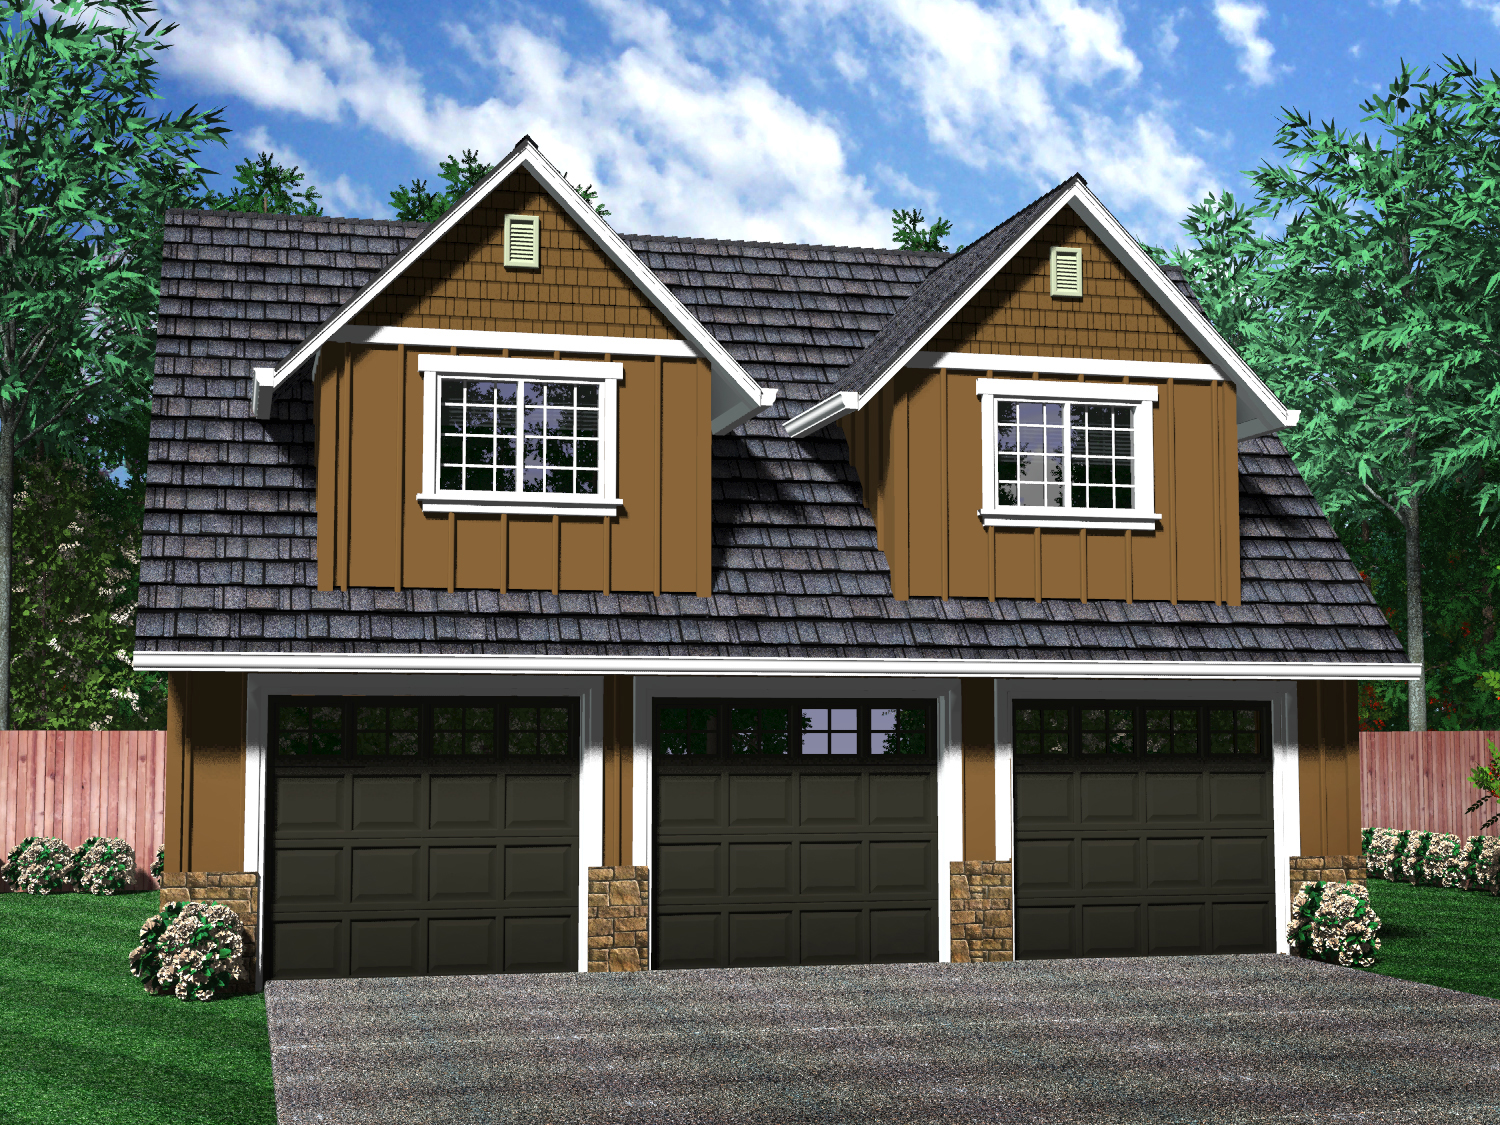 Detached garages for Carport with apartment above